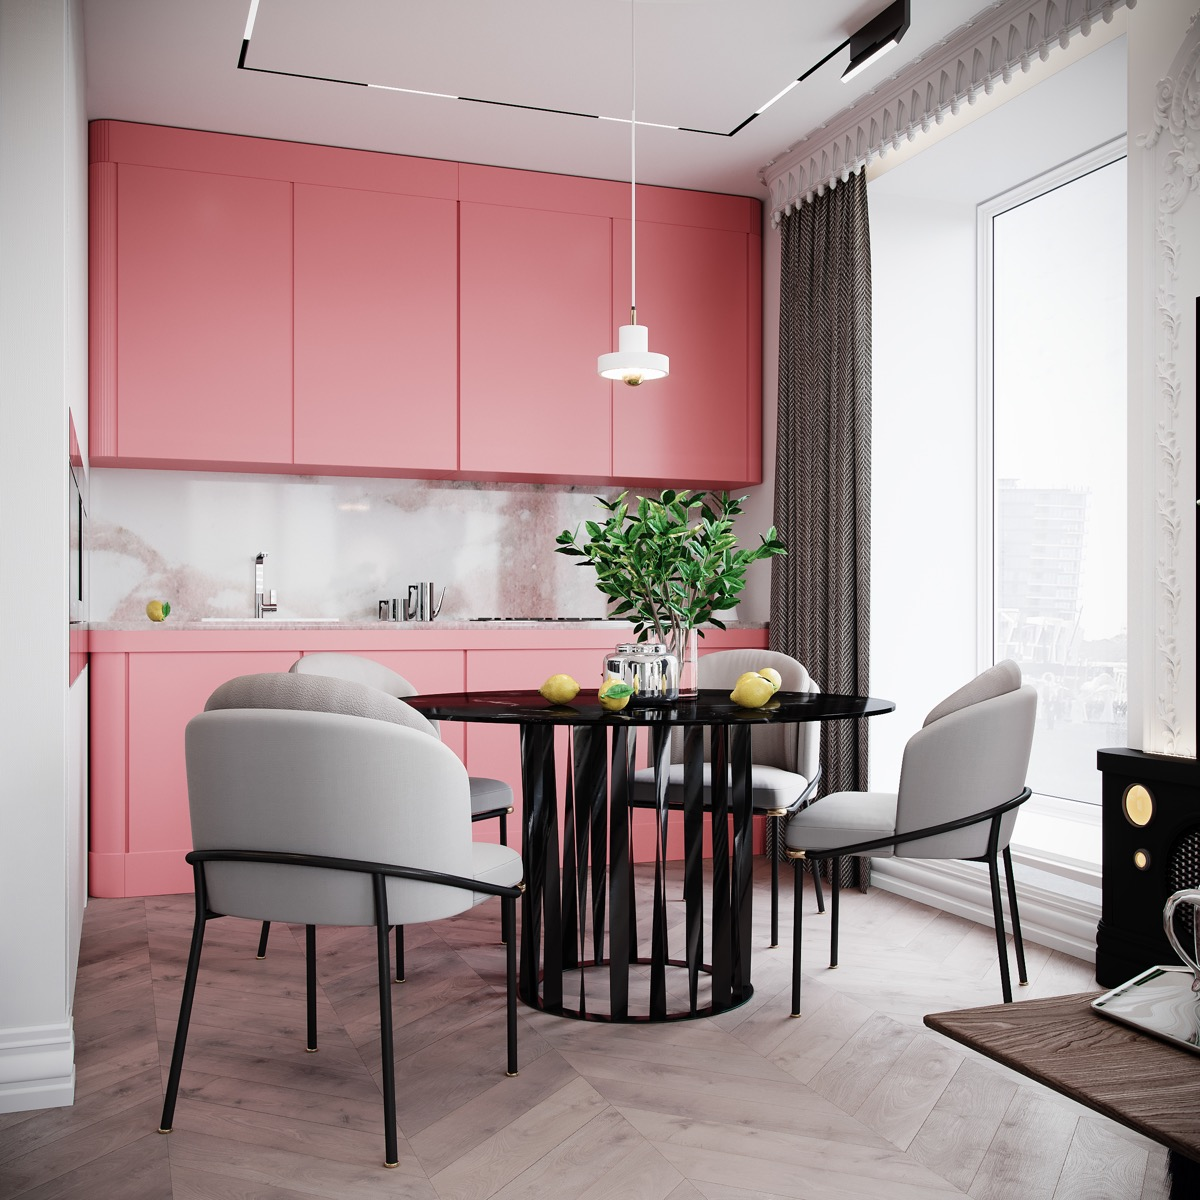 51 Inspirational Pink Kitchens With Tips & Accessories To Help You Design Yours images 5